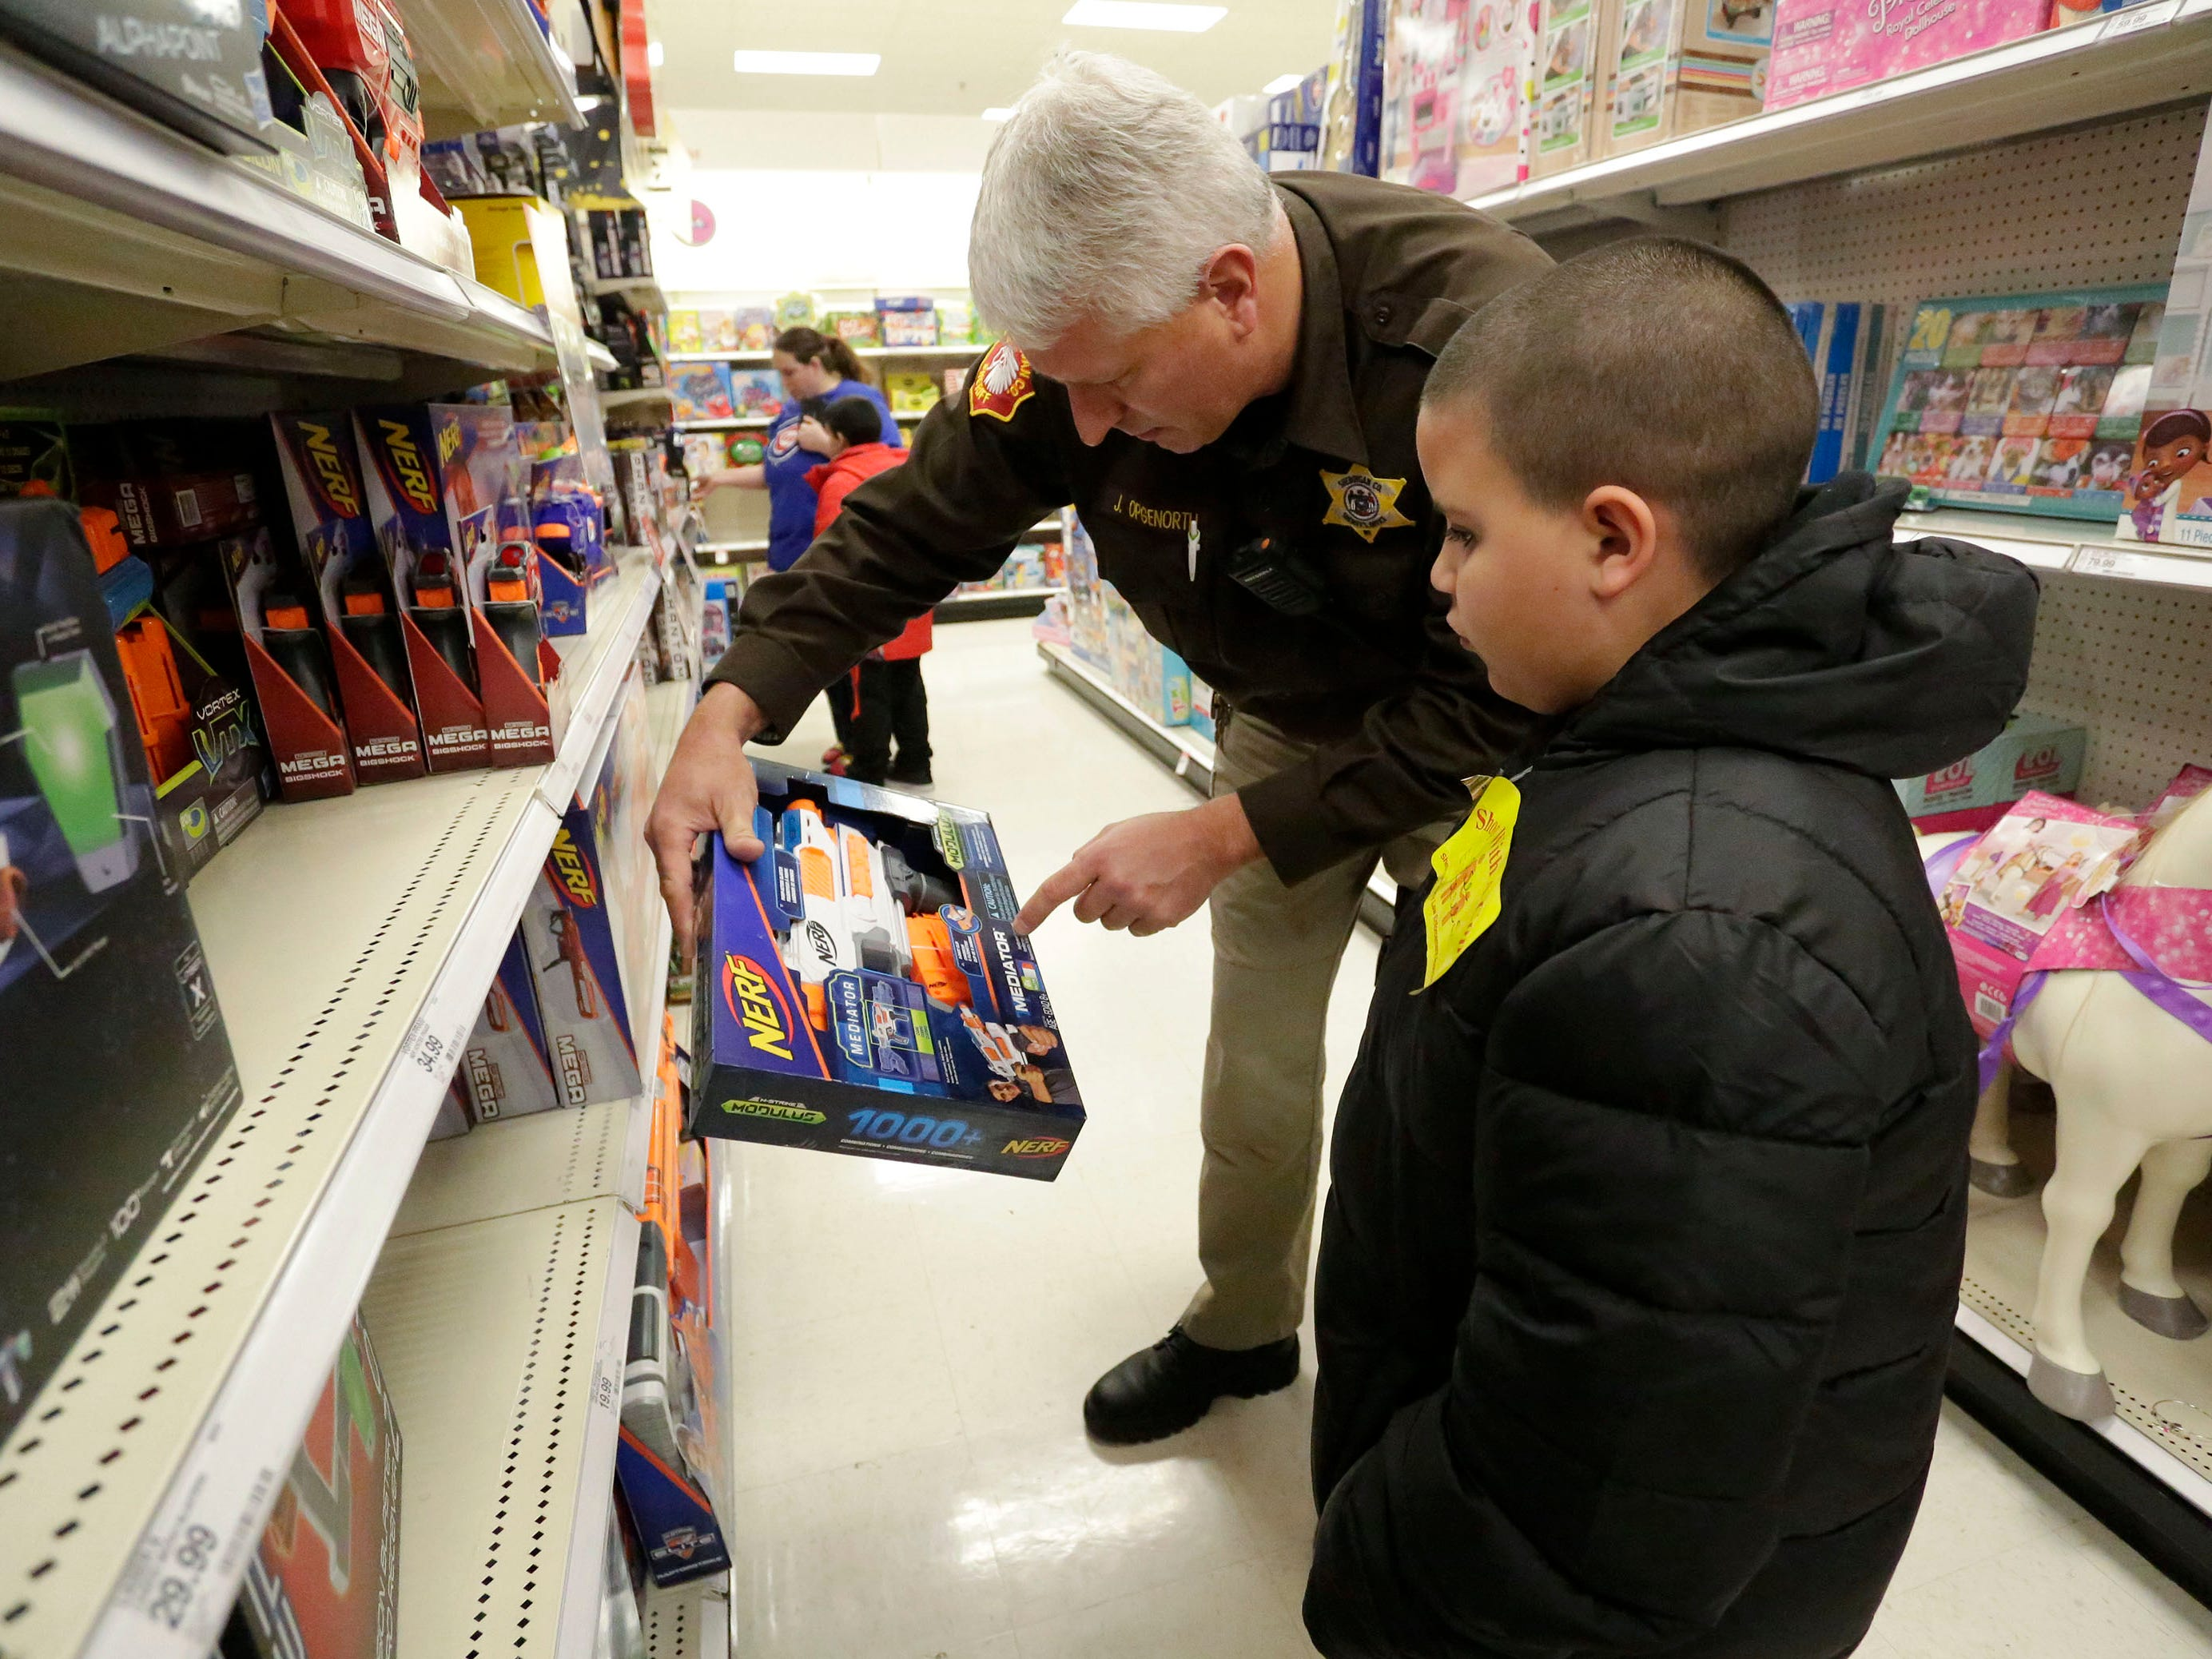 Sheriff Department's Jim Opgenorth, left, points a feature on a toy at Target to Jose Esteves, 8, of Sheboygan, Wis., during the 21st annual Shop with a cop, Tuesday, December 4, 2018, in Kohler, Wis. The program, in its 21st year, raises funds to give children a chance to buy holiday gifts that they otherwise might not receive.